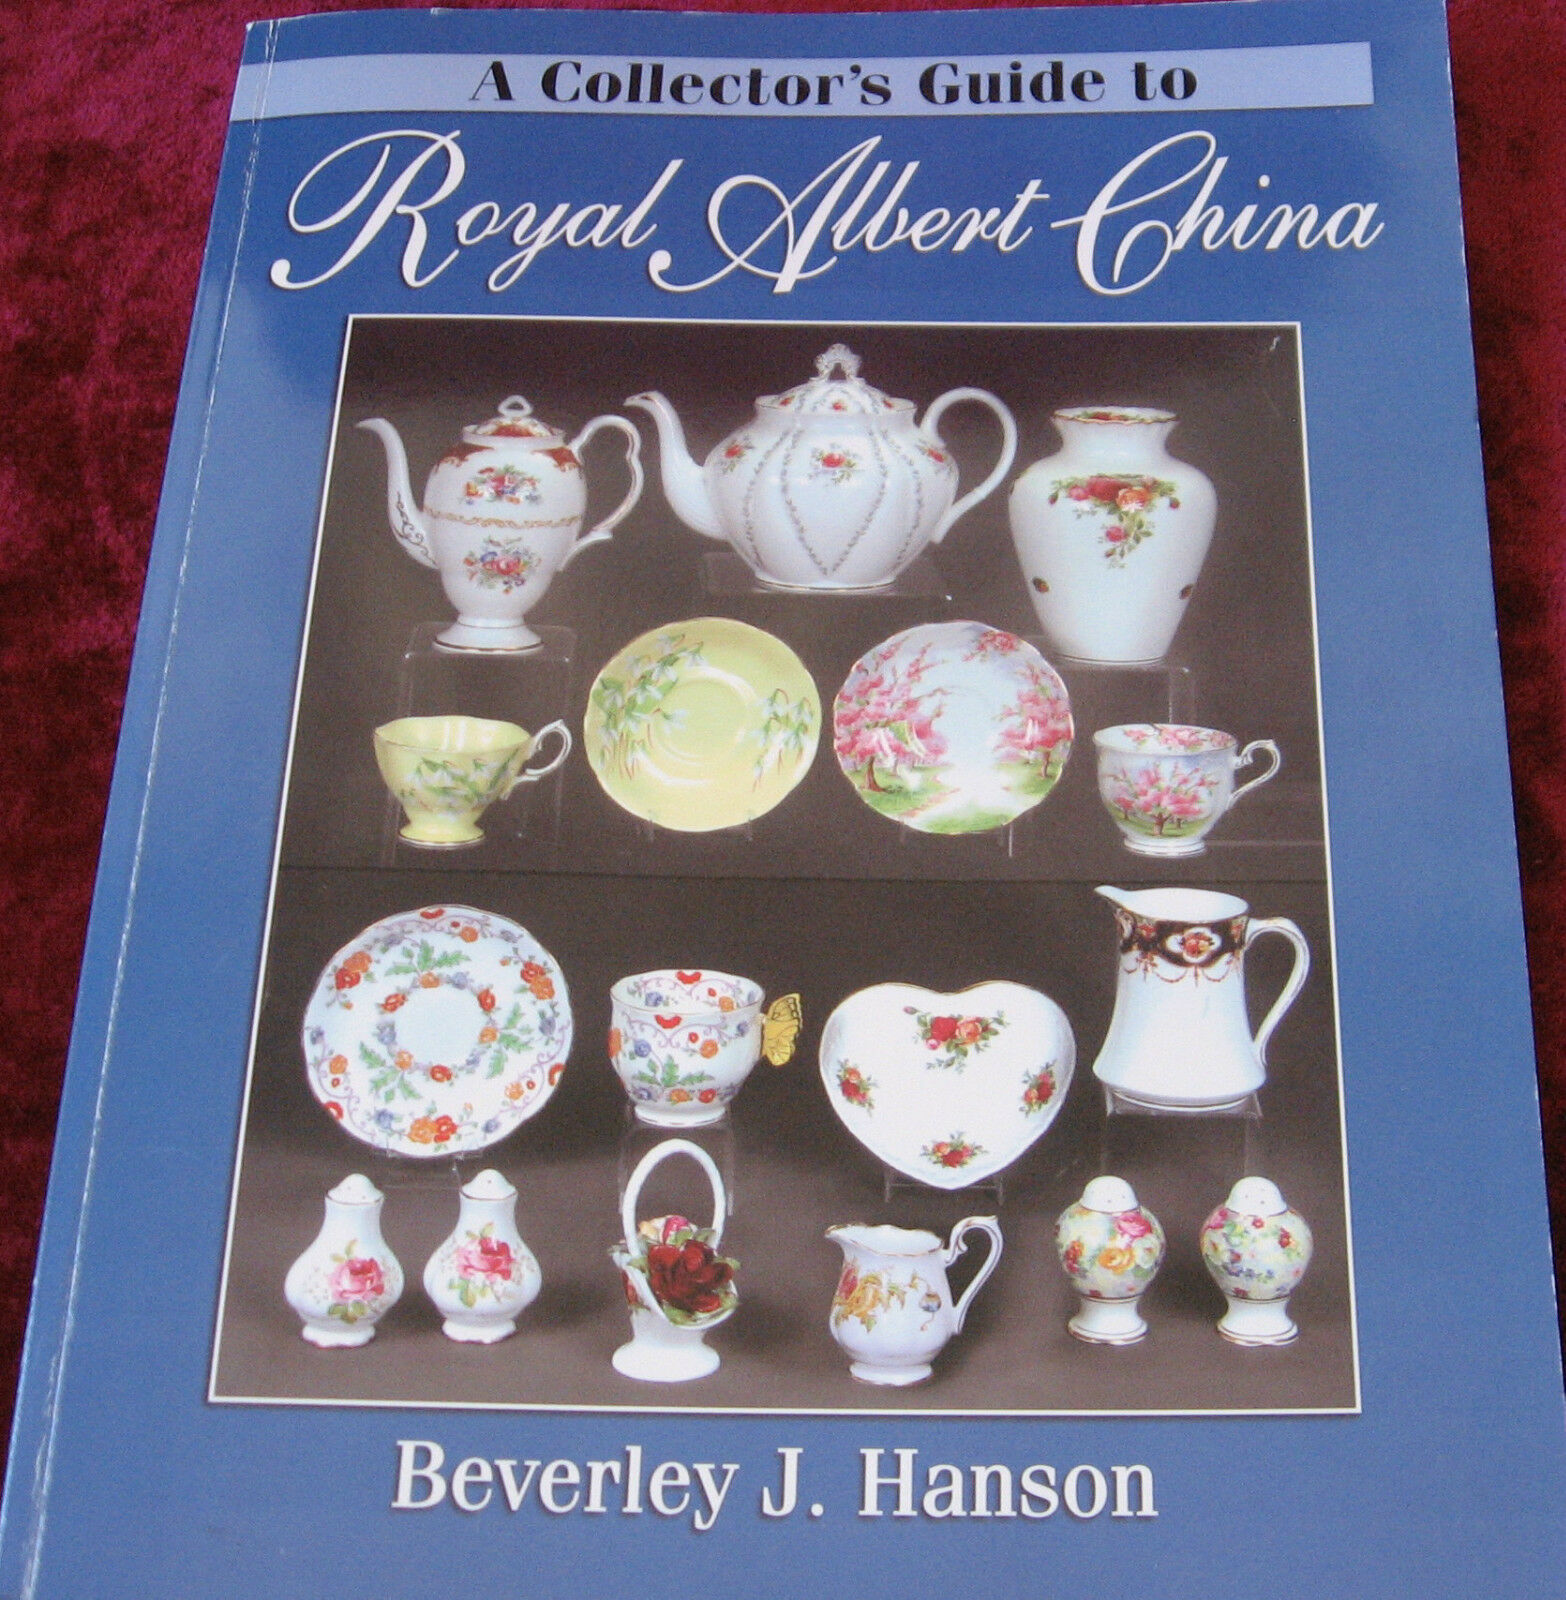 как выглядит A COLLECTORS GUIDE TO ROYAL ALBERT CHINA BOOK фото